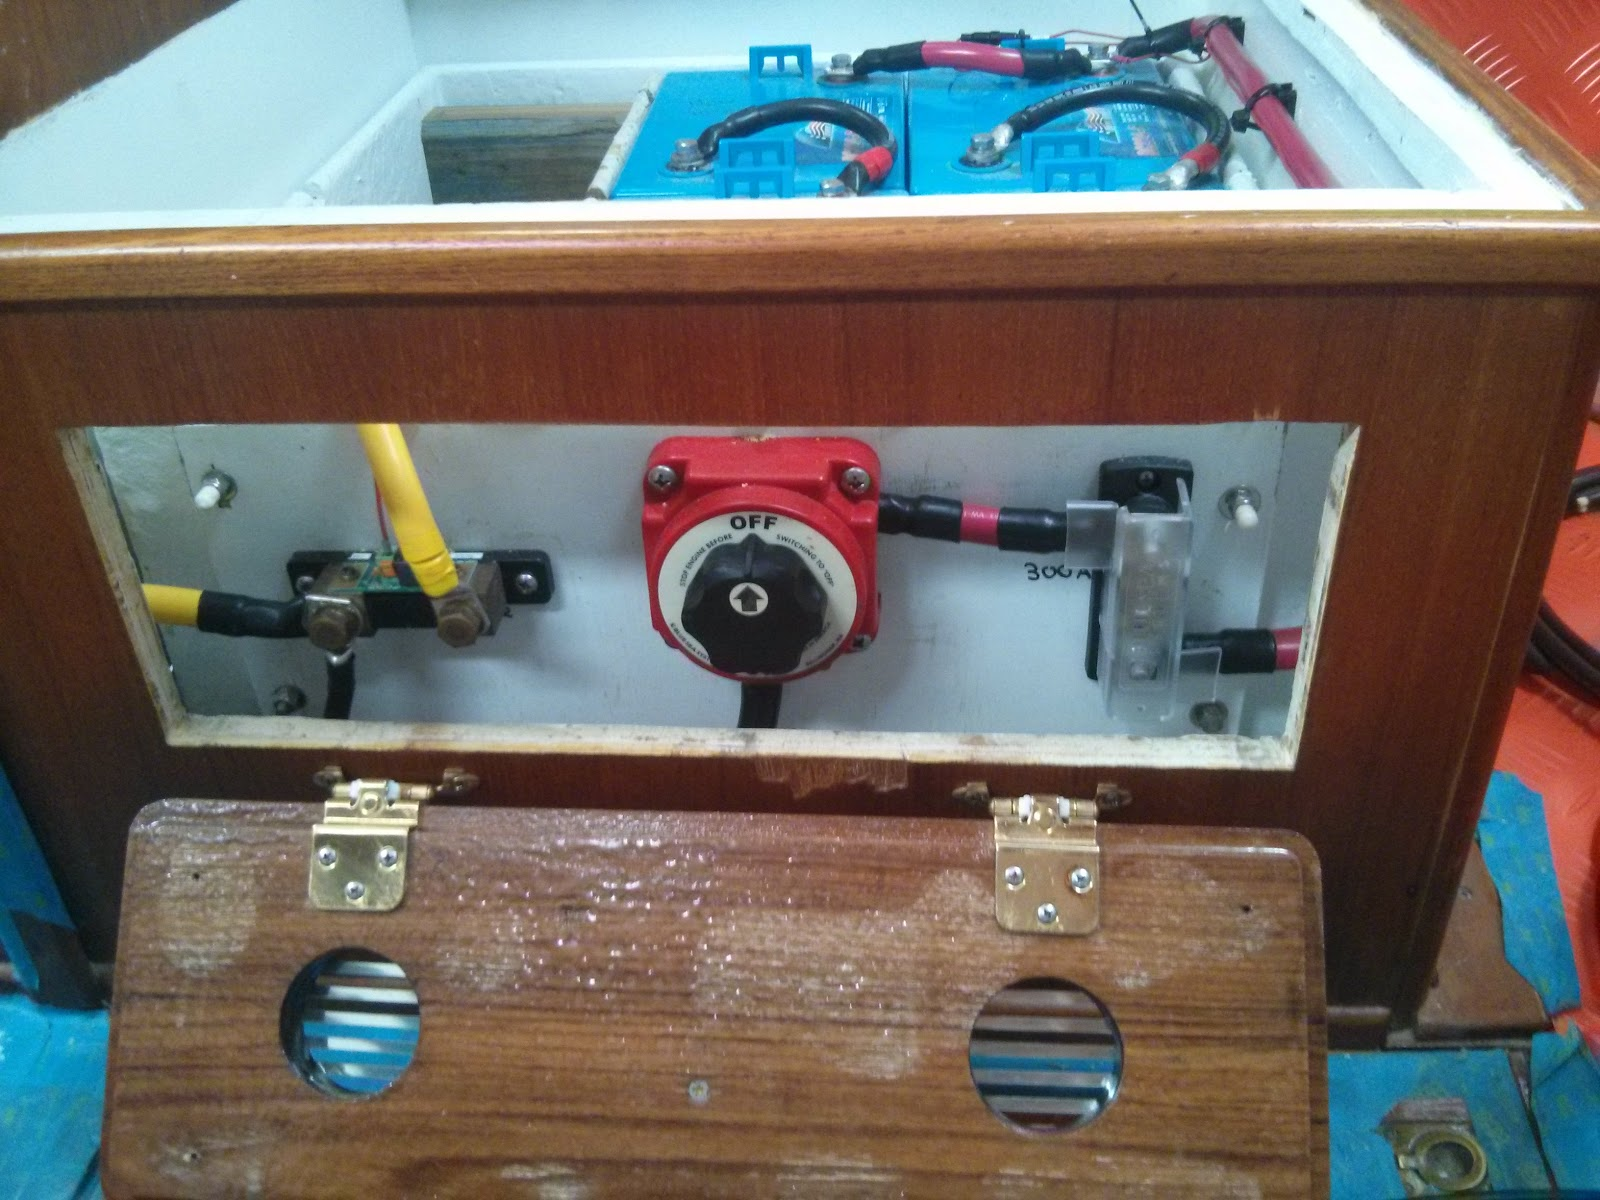 Sv Pilgrim Crimping Lugs Onto Large Gauge Electrical Wires Marine Wiring Junction Box Wire Runs At House Battery Bank